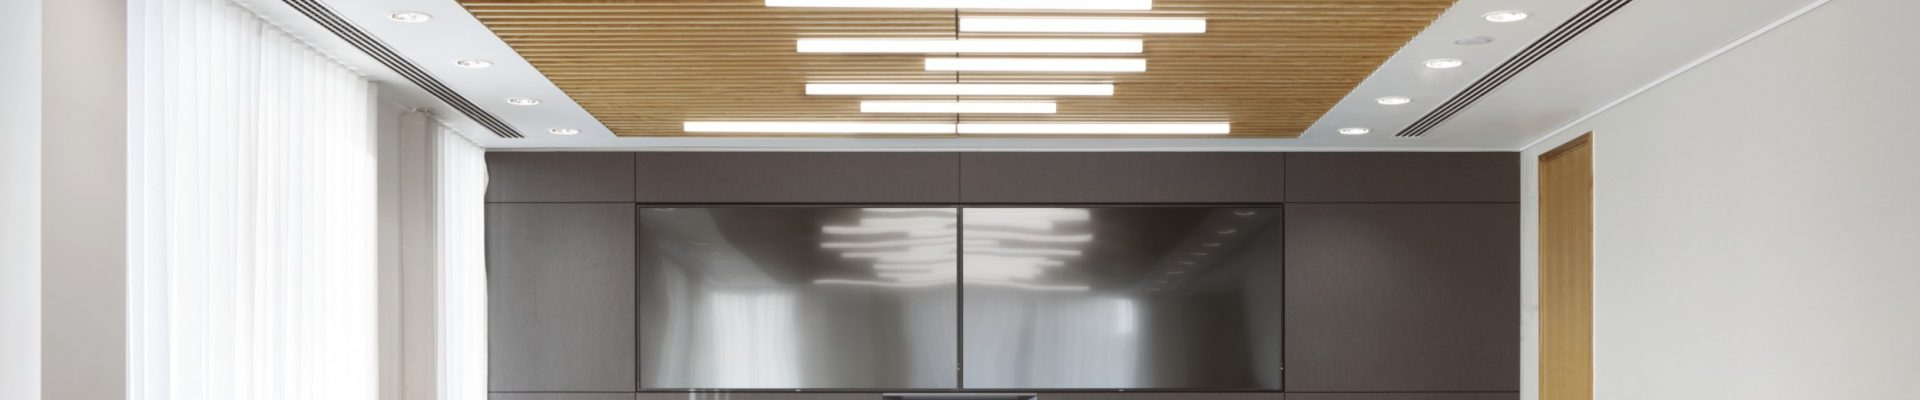 wooden ceiling grill